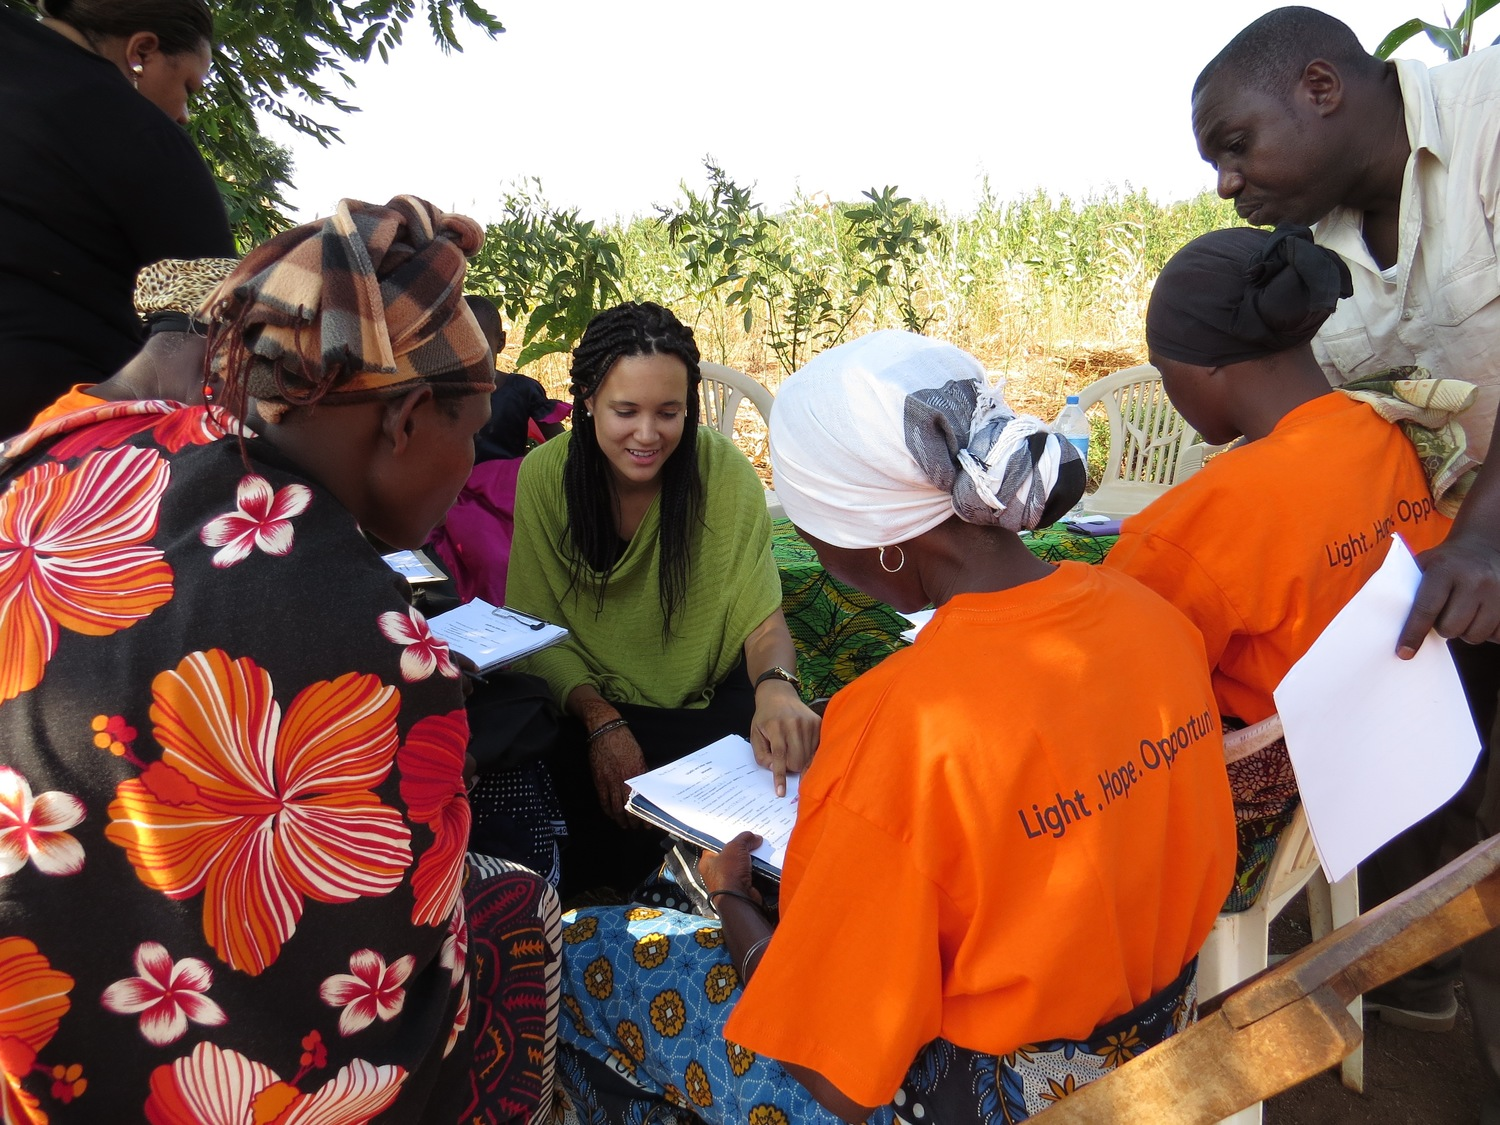 GLOBAL SOCIAL BENEFIT FELLOW, LINDSEY ALLEN, RESEARCHES AND WORKS WITH SOLAR SISTER IN TANZANIA.